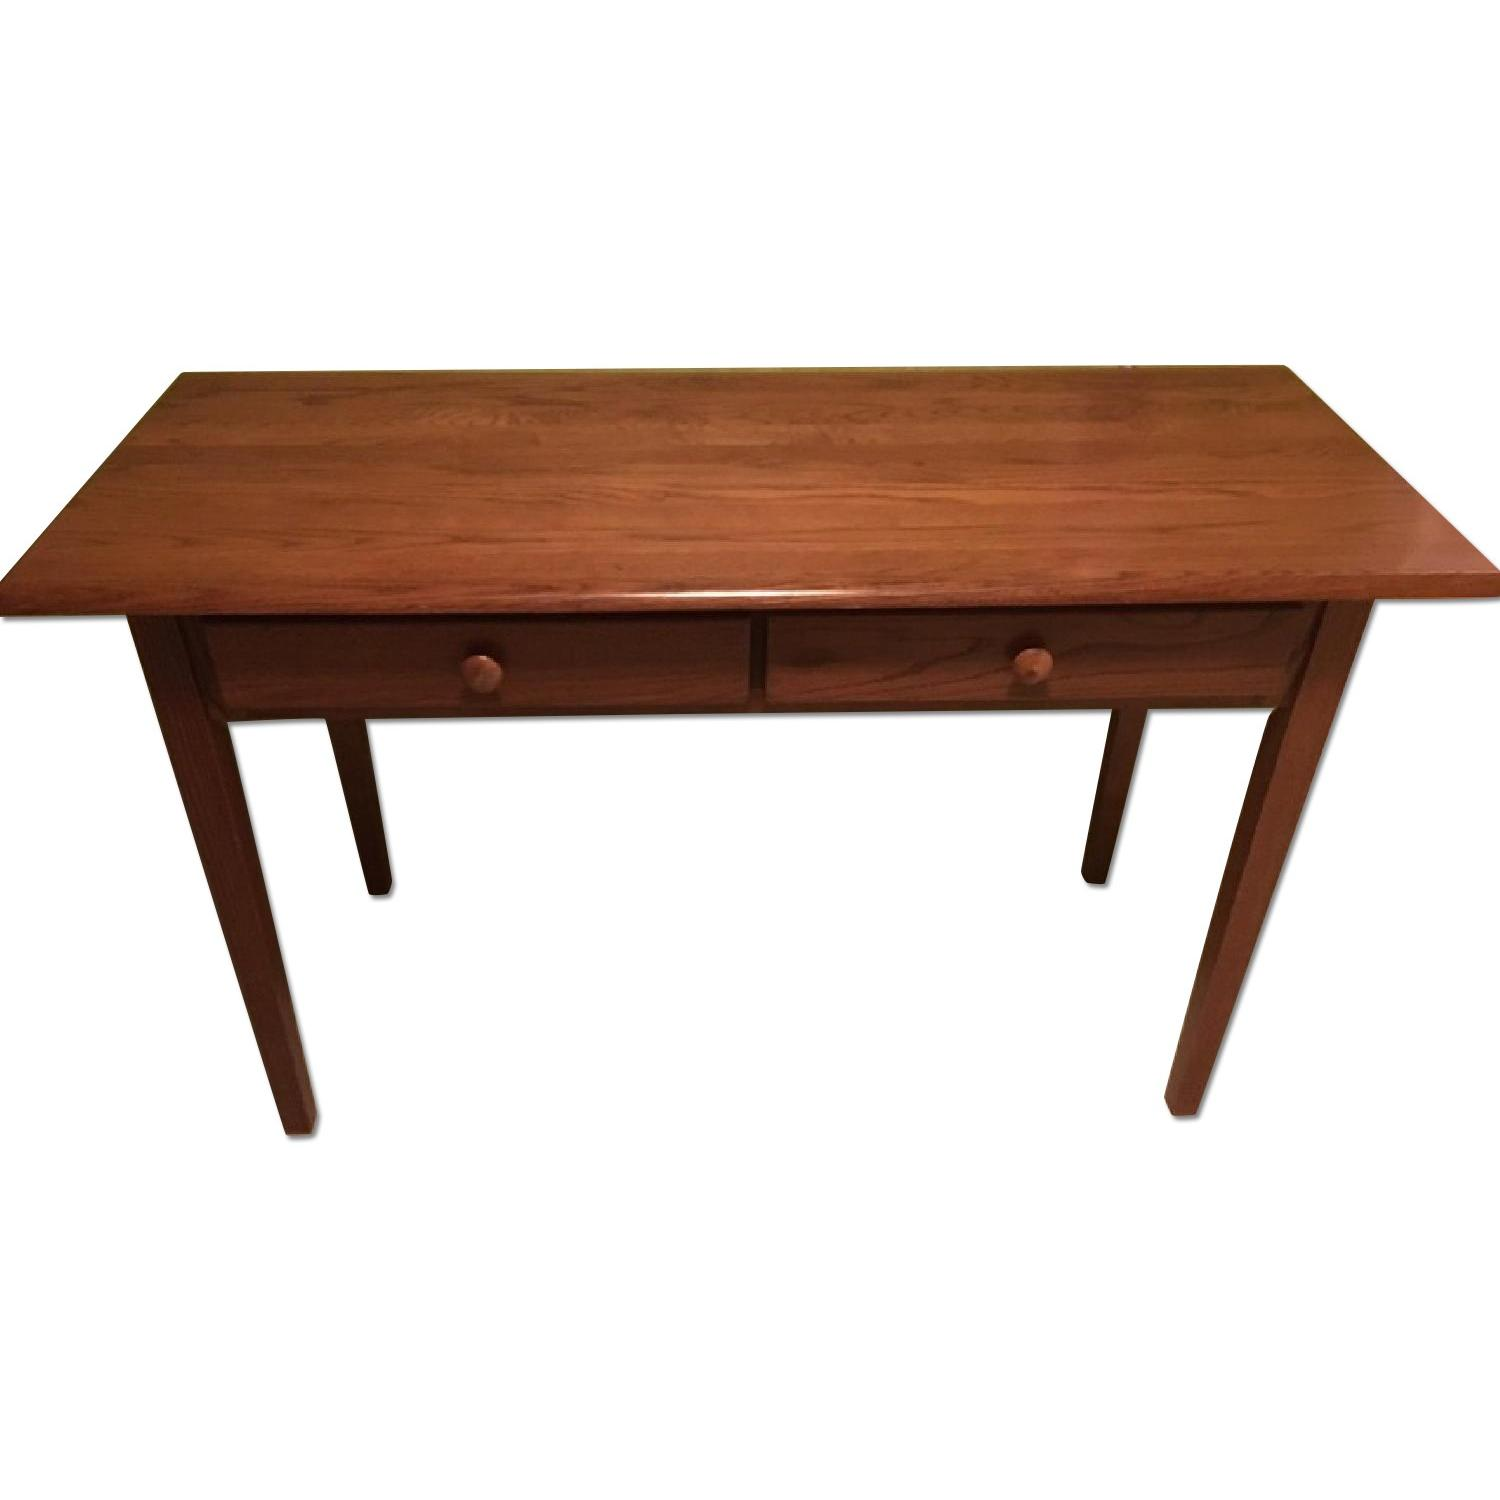 Wood Desk w/ 2 Drawers - image-0